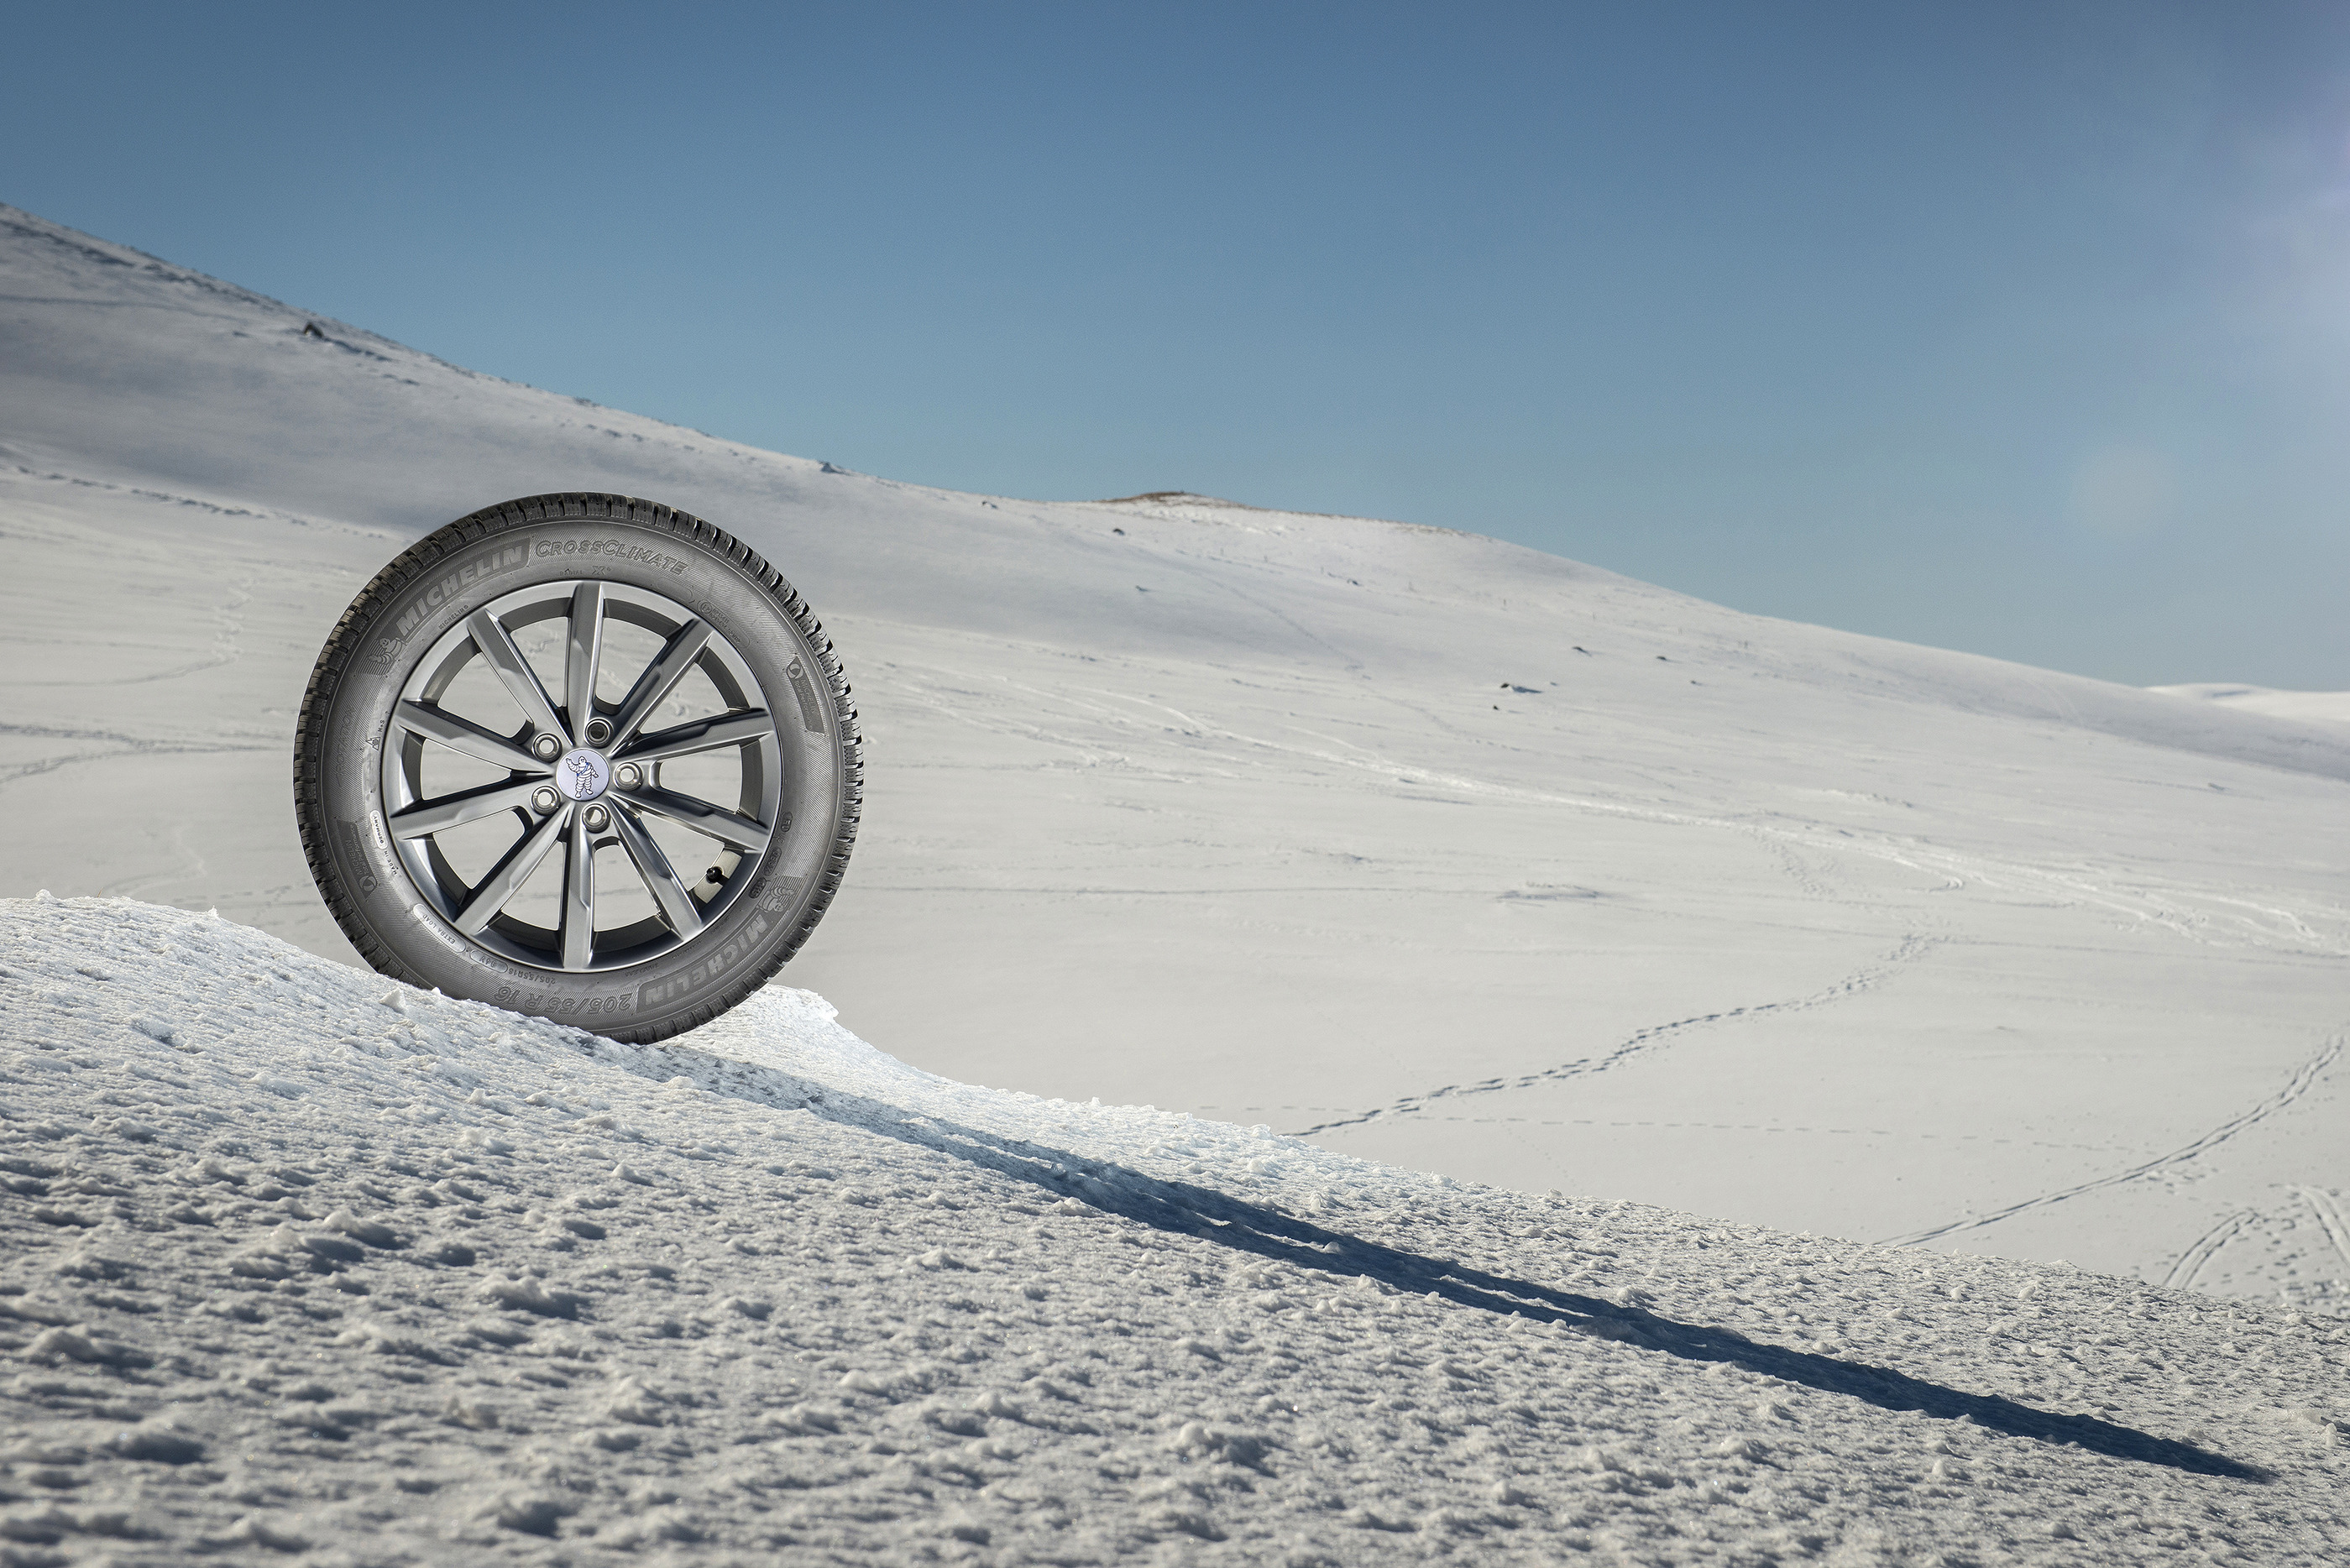 Arc_CROSSCLIMATE_02-jpg_articleId_10-5.jpg